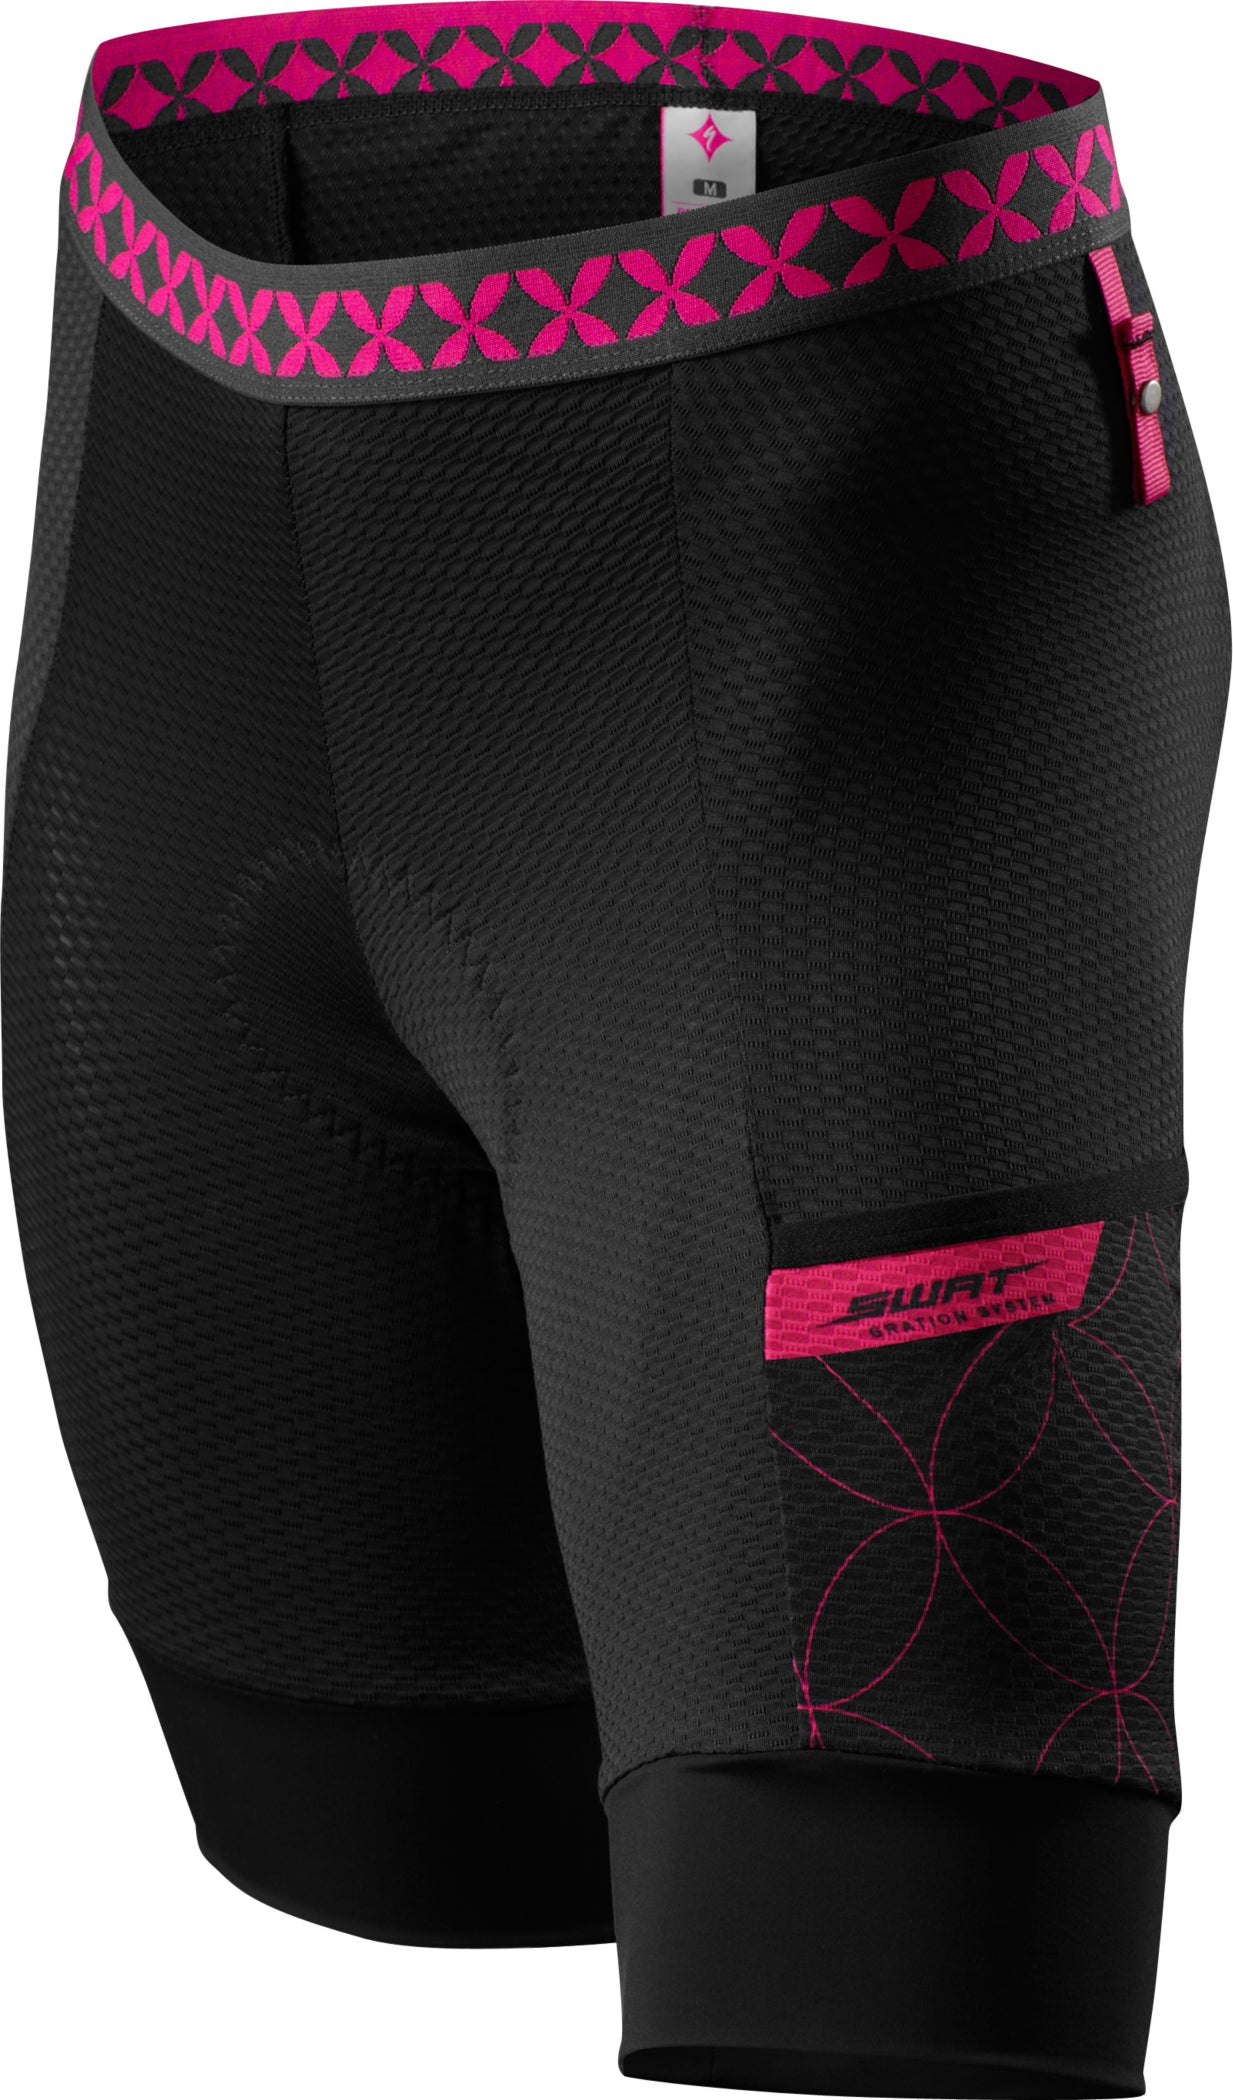 Women's Mountain Liner Shorts with SWAT™